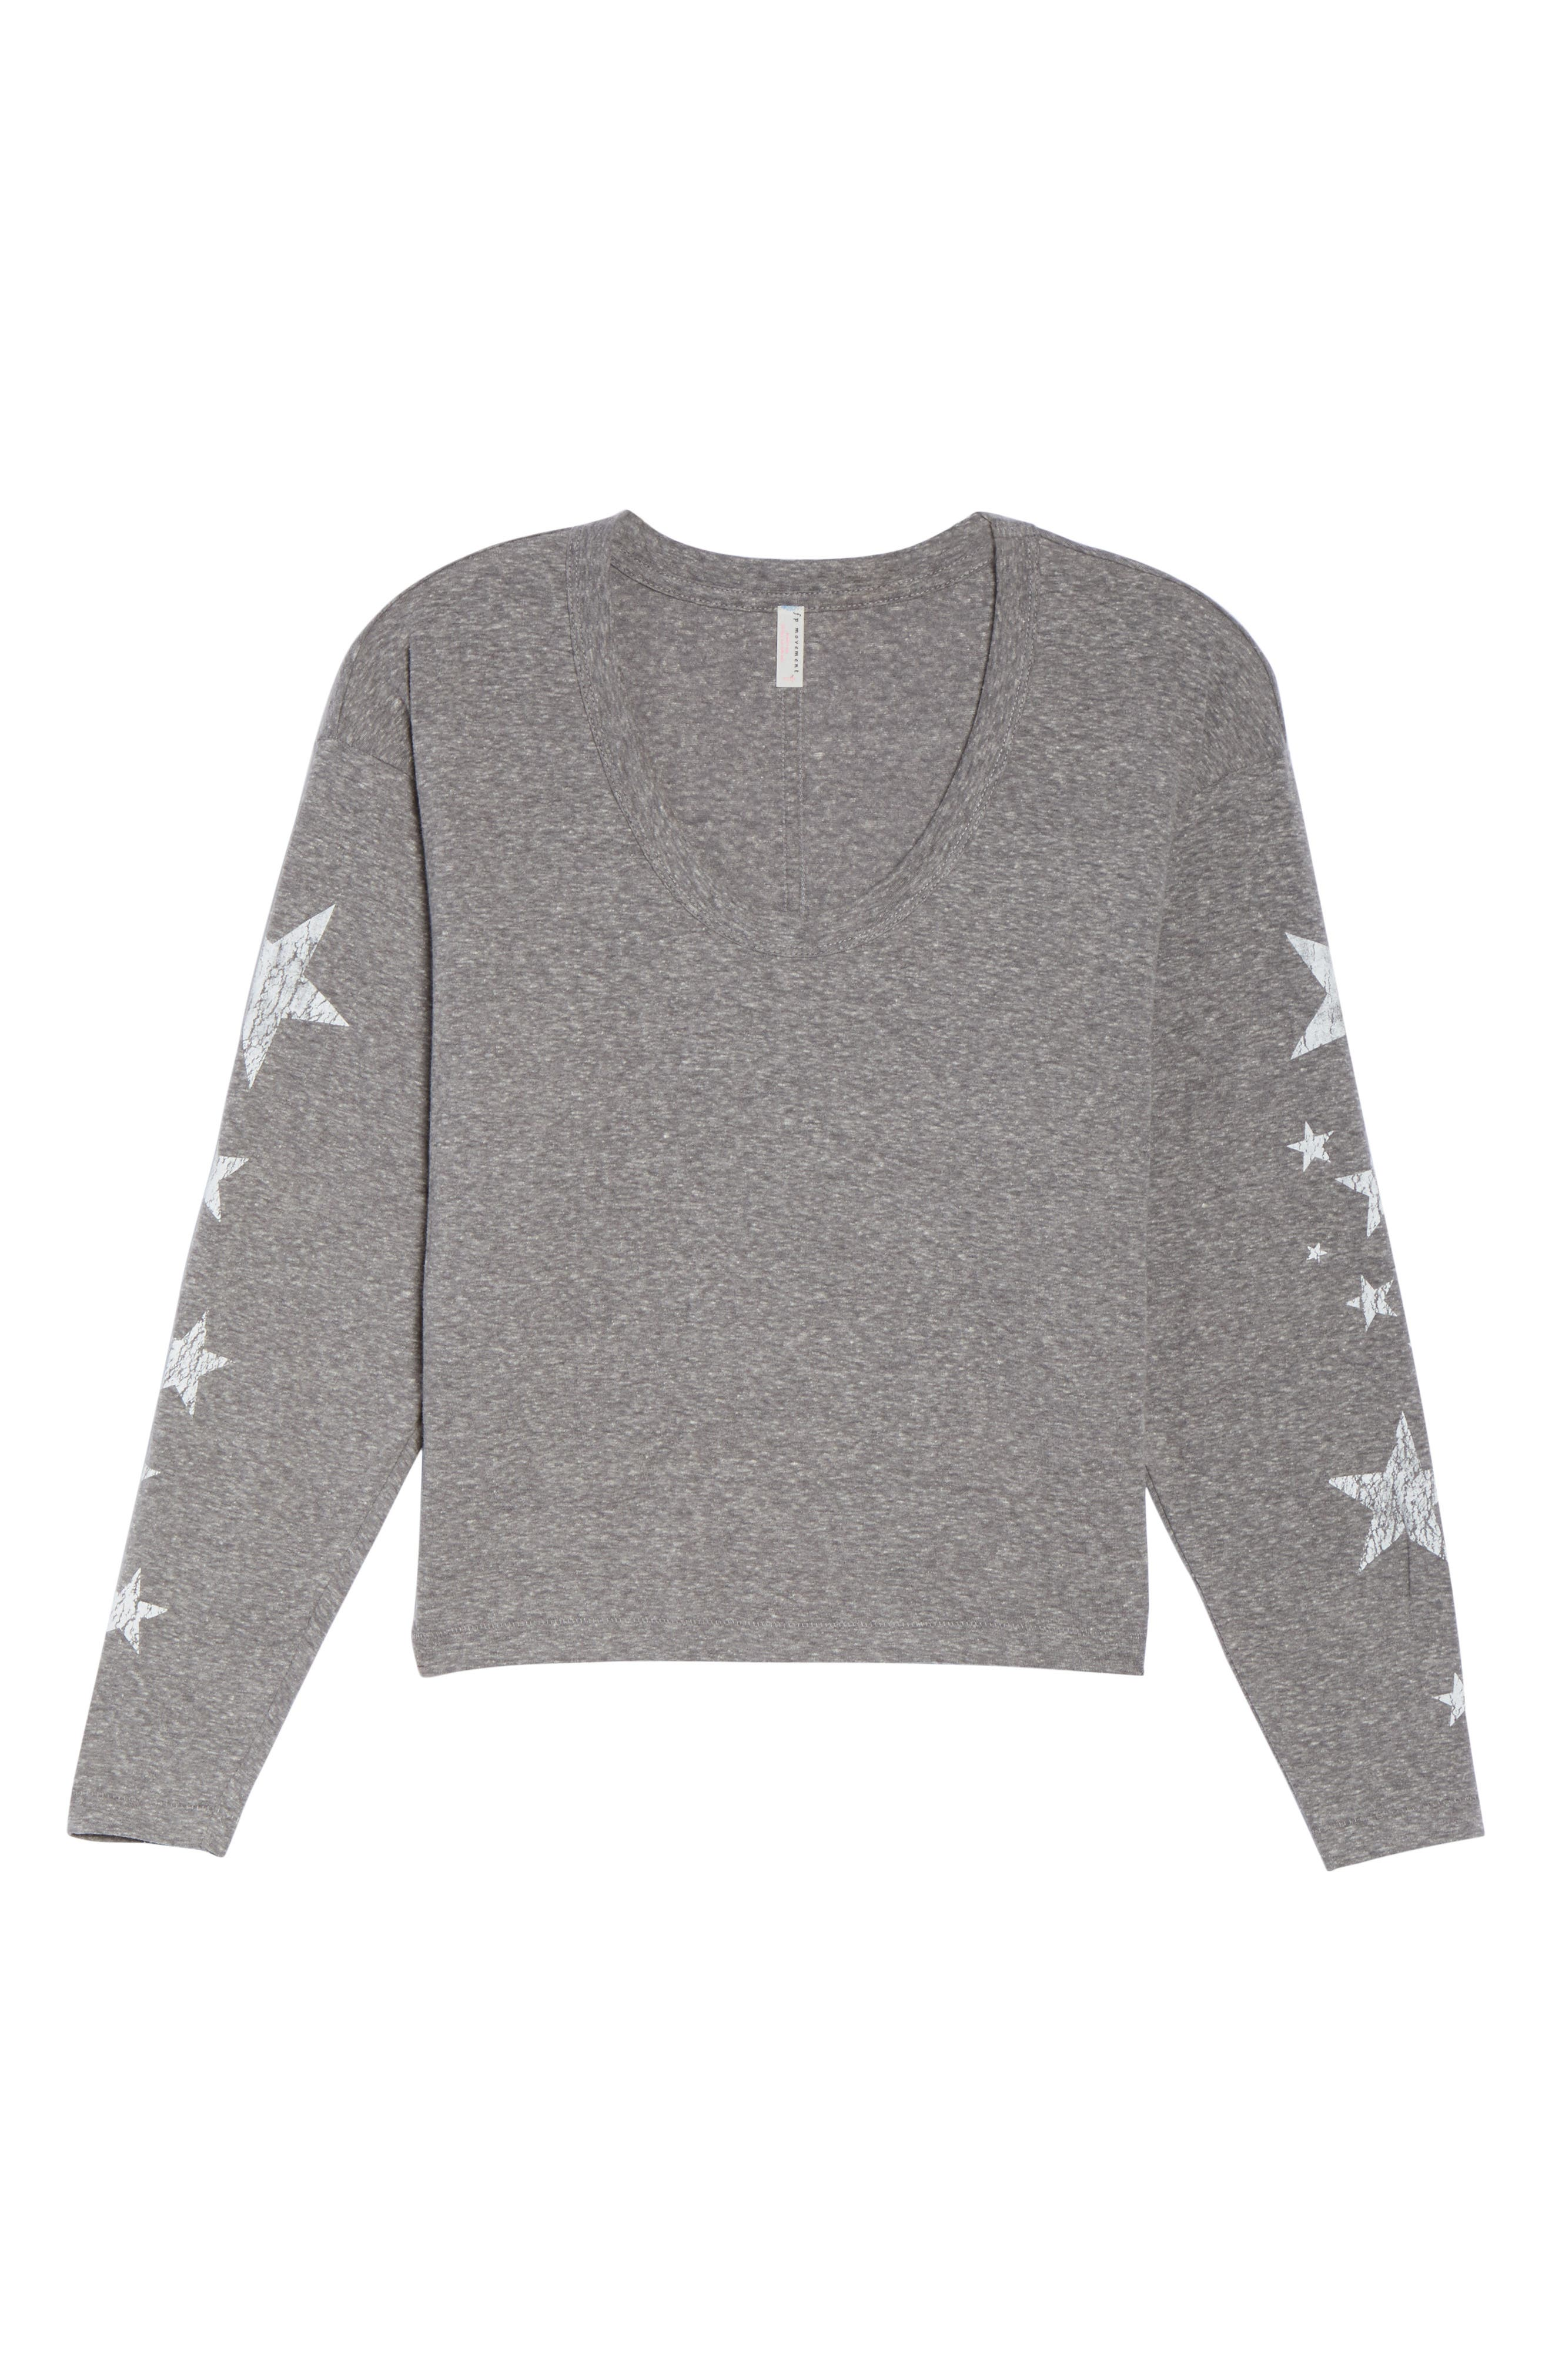 Free People Melrose Star Graphic Top,                             Alternate thumbnail 7, color,                             Grey